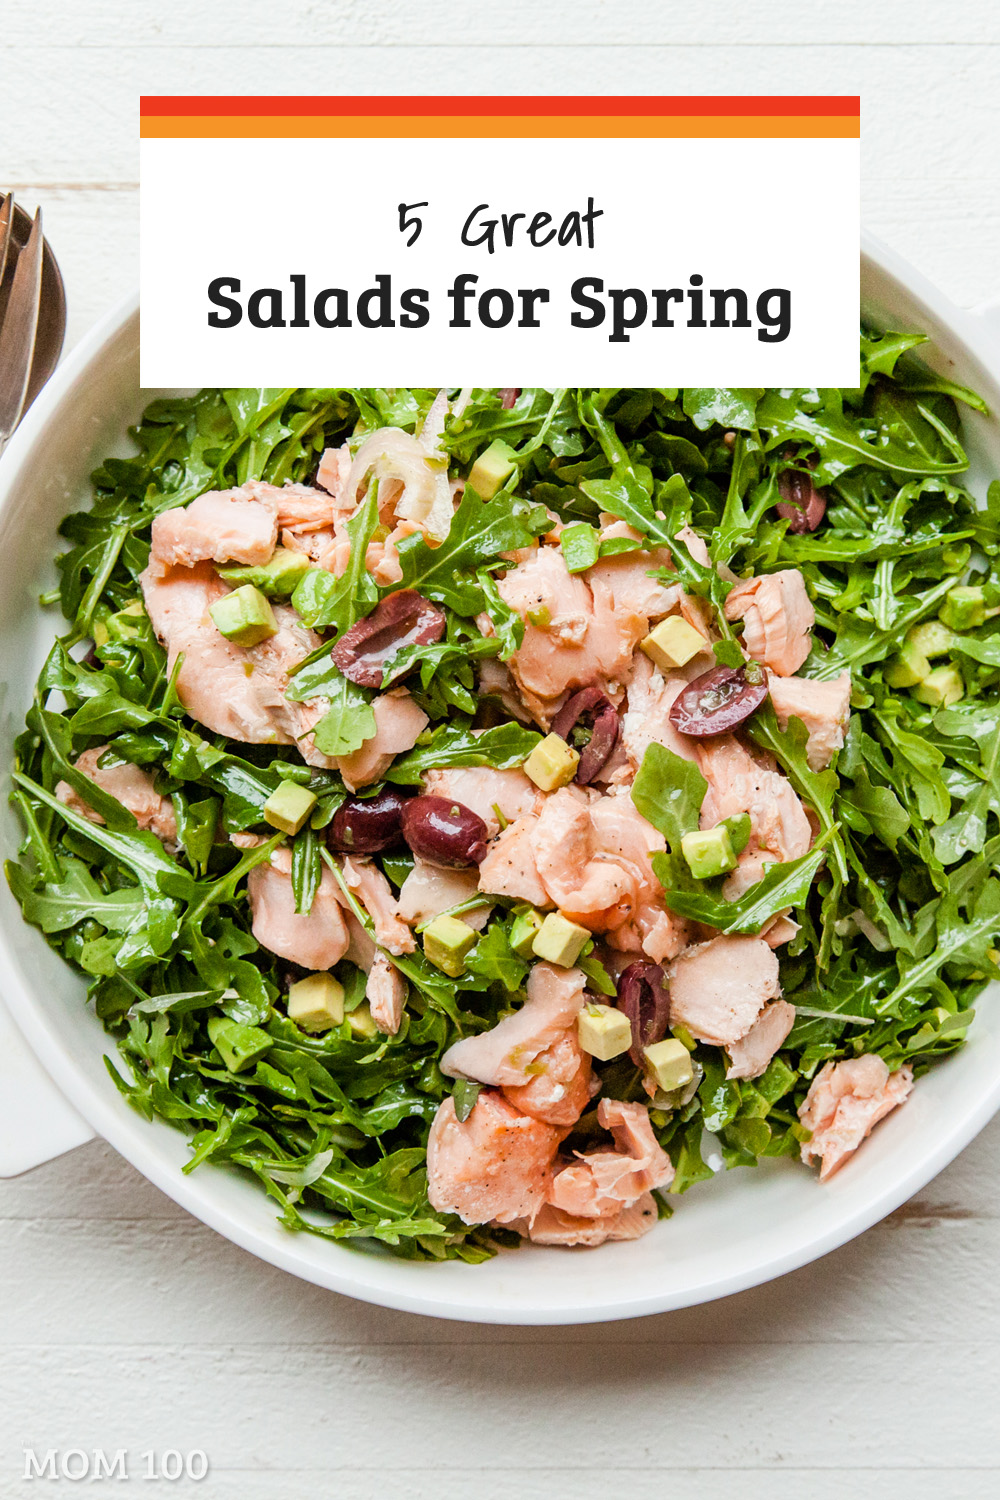 5 Great Salads for Spring: Spring = salads, and here are 5 crunchy, fresh salads to get the season started.